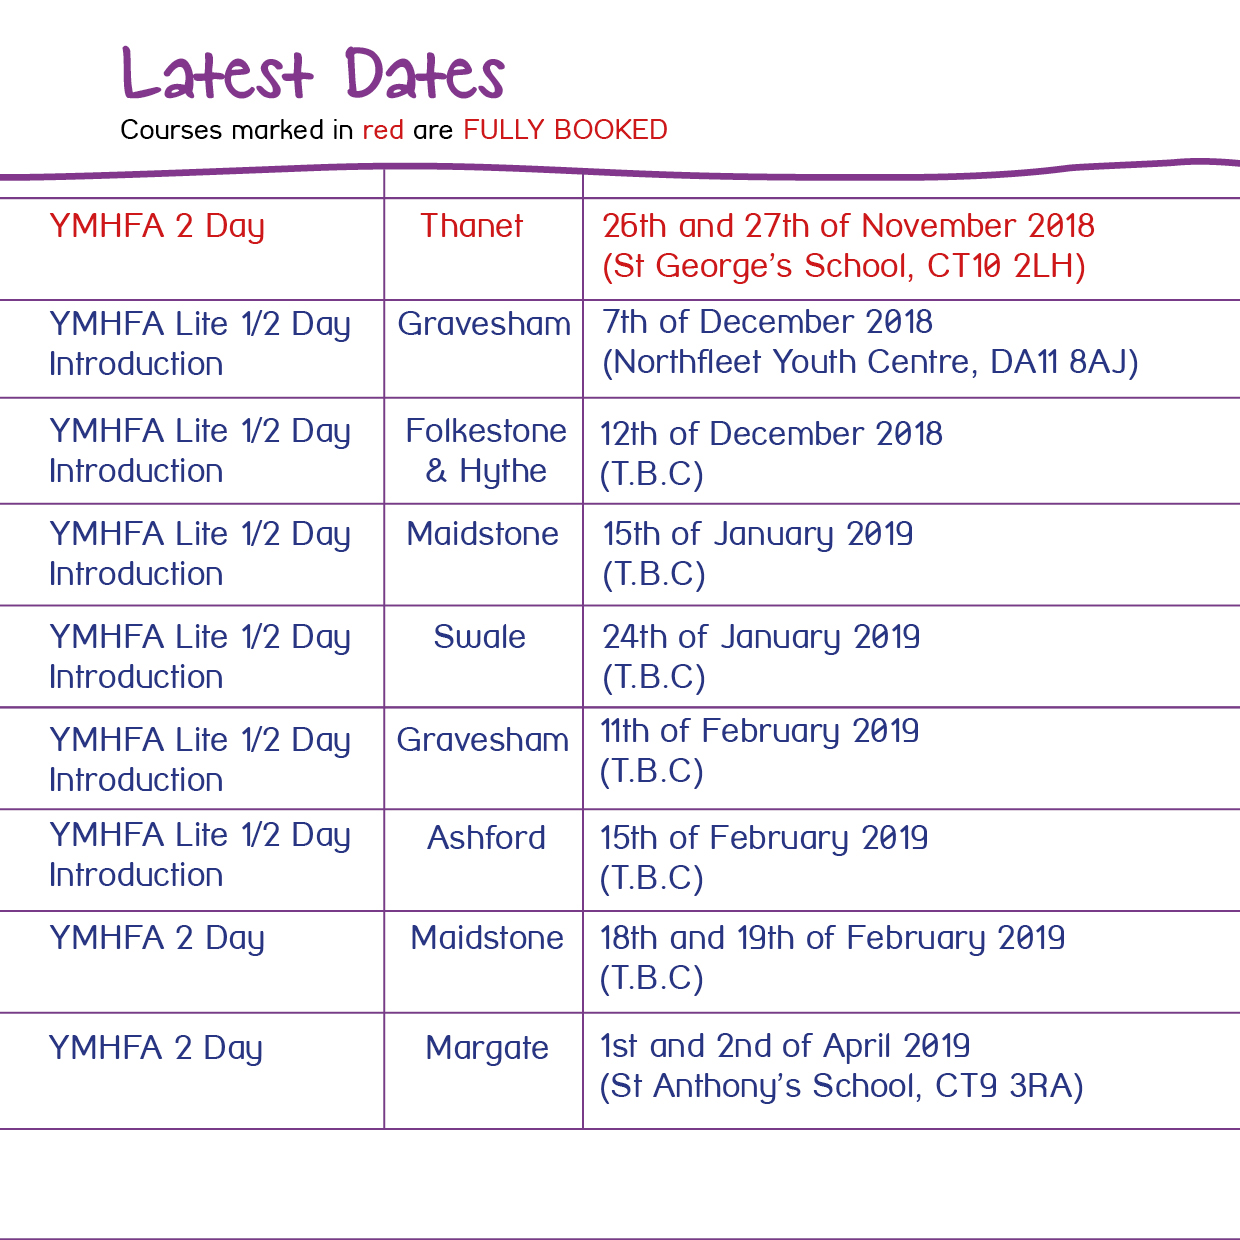 YMHFA 2 Day, Thanet, 26th and 27th of November 2018, St George's School, CT10 2LH. YMHFA Lite 1/2 Day Introduction, Gravesham, 7th of December 2018, Northfleet Youth Centre, DA11 8AJ. YMHFA Lite 1/2 Day Introduction, Folkestone and Hythe, 12th of December 2018, TBC. YMHFA Lite 1/2 Day Introduction, Maidstone, 15th of January 2019, TBC. YMHFA Lite 1/2 Day Introduction, Swale, 24th of January 2019, TBC. YMHFA Lite 1/2 Day Introduction, Gravesham, 11th of February 2019, TBC. YMHFA Lite 1/2 Day Introduction, Ashford, 15th of February 2019, TBC. YMHFA 2 Day, Maidstone, 18th and 19th of February 2019, TBC. YMHFA 2 Day, Margate, 1st and 2nd of April 2019, St Anthony's School, CT9 3RA.